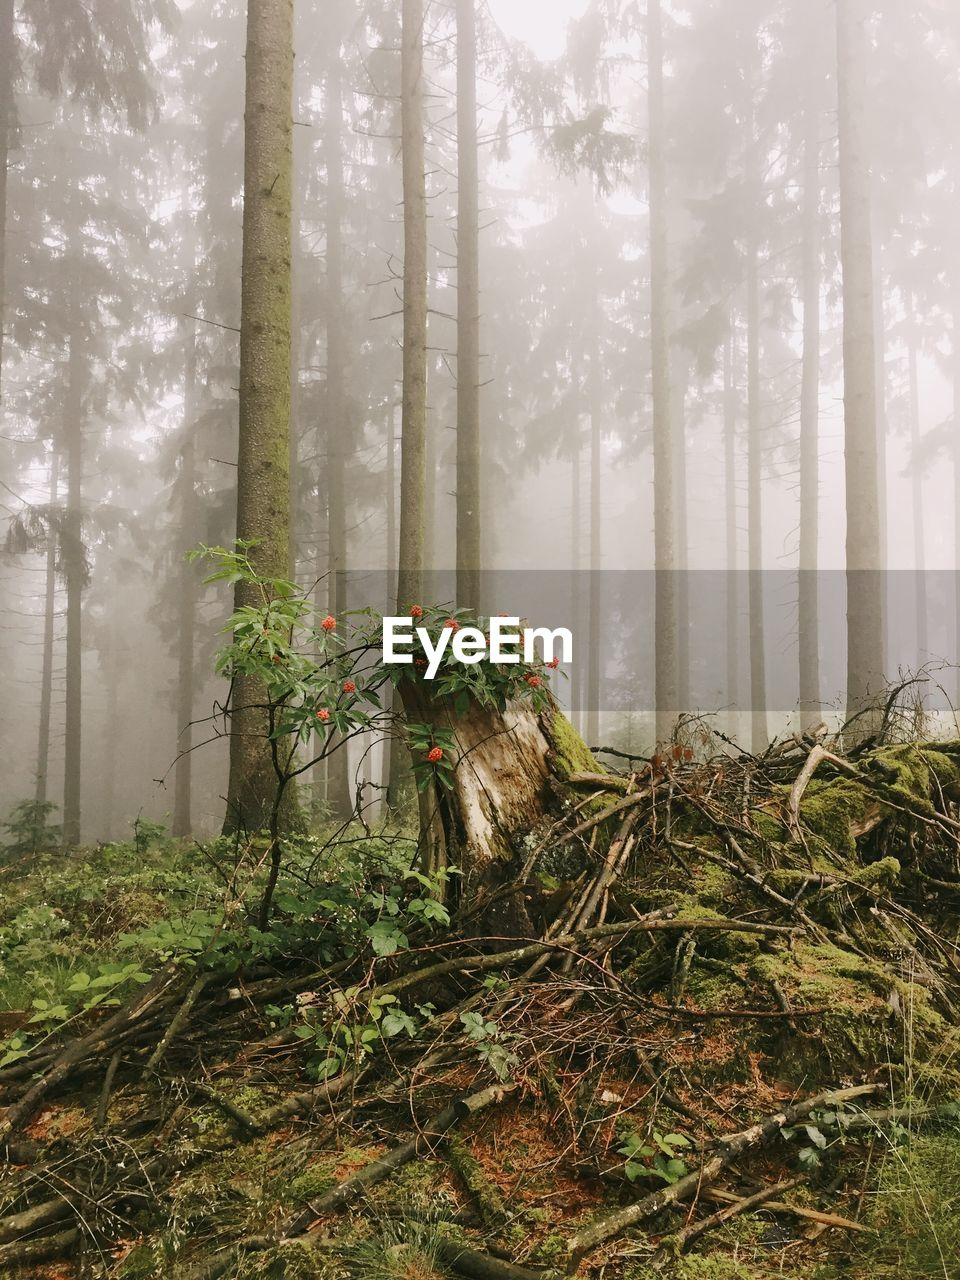 plant, land, tree, forest, growth, fog, nature, beauty in nature, woodland, trunk, tree trunk, tranquility, no people, day, tranquil scene, non-urban scene, environment, outdoors, plant part, hazy